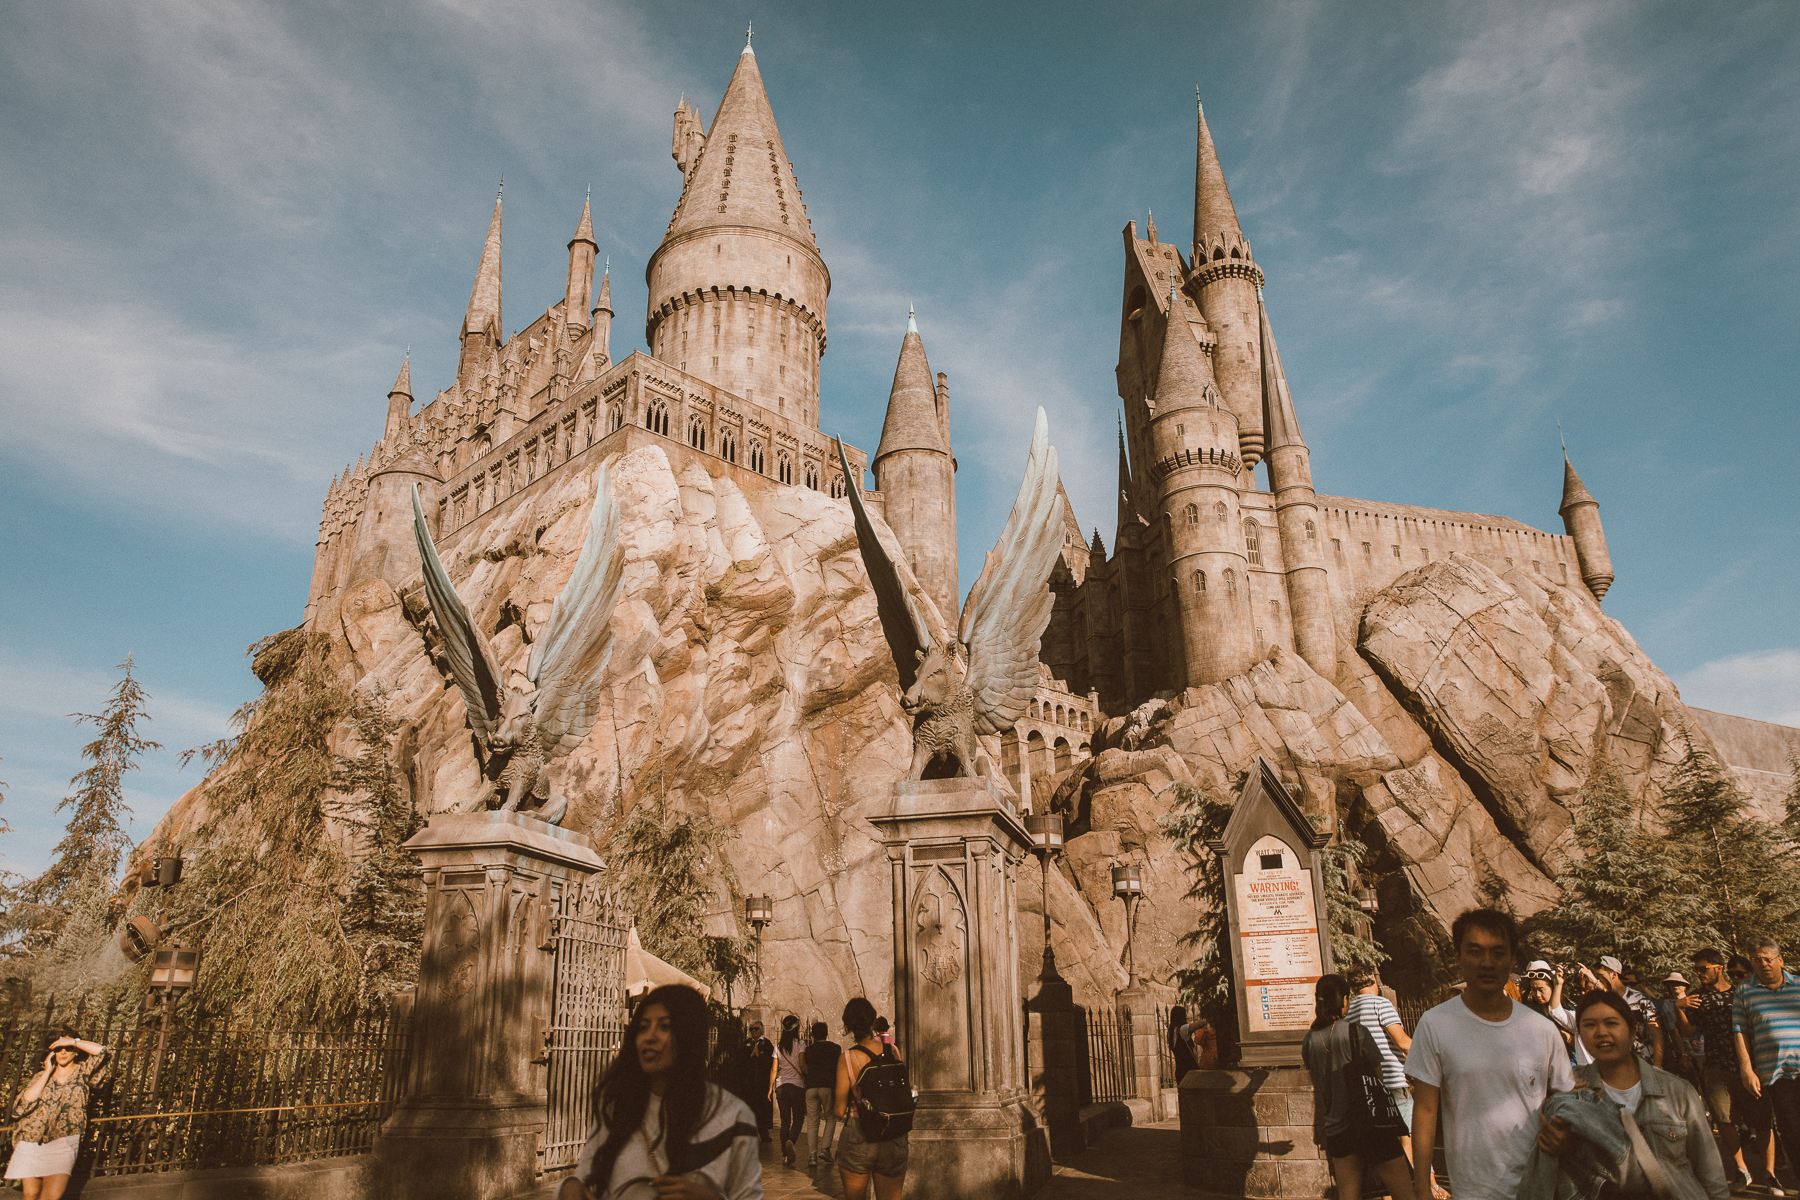 California Road trip Harry Potter world by photographer Ailera Stone